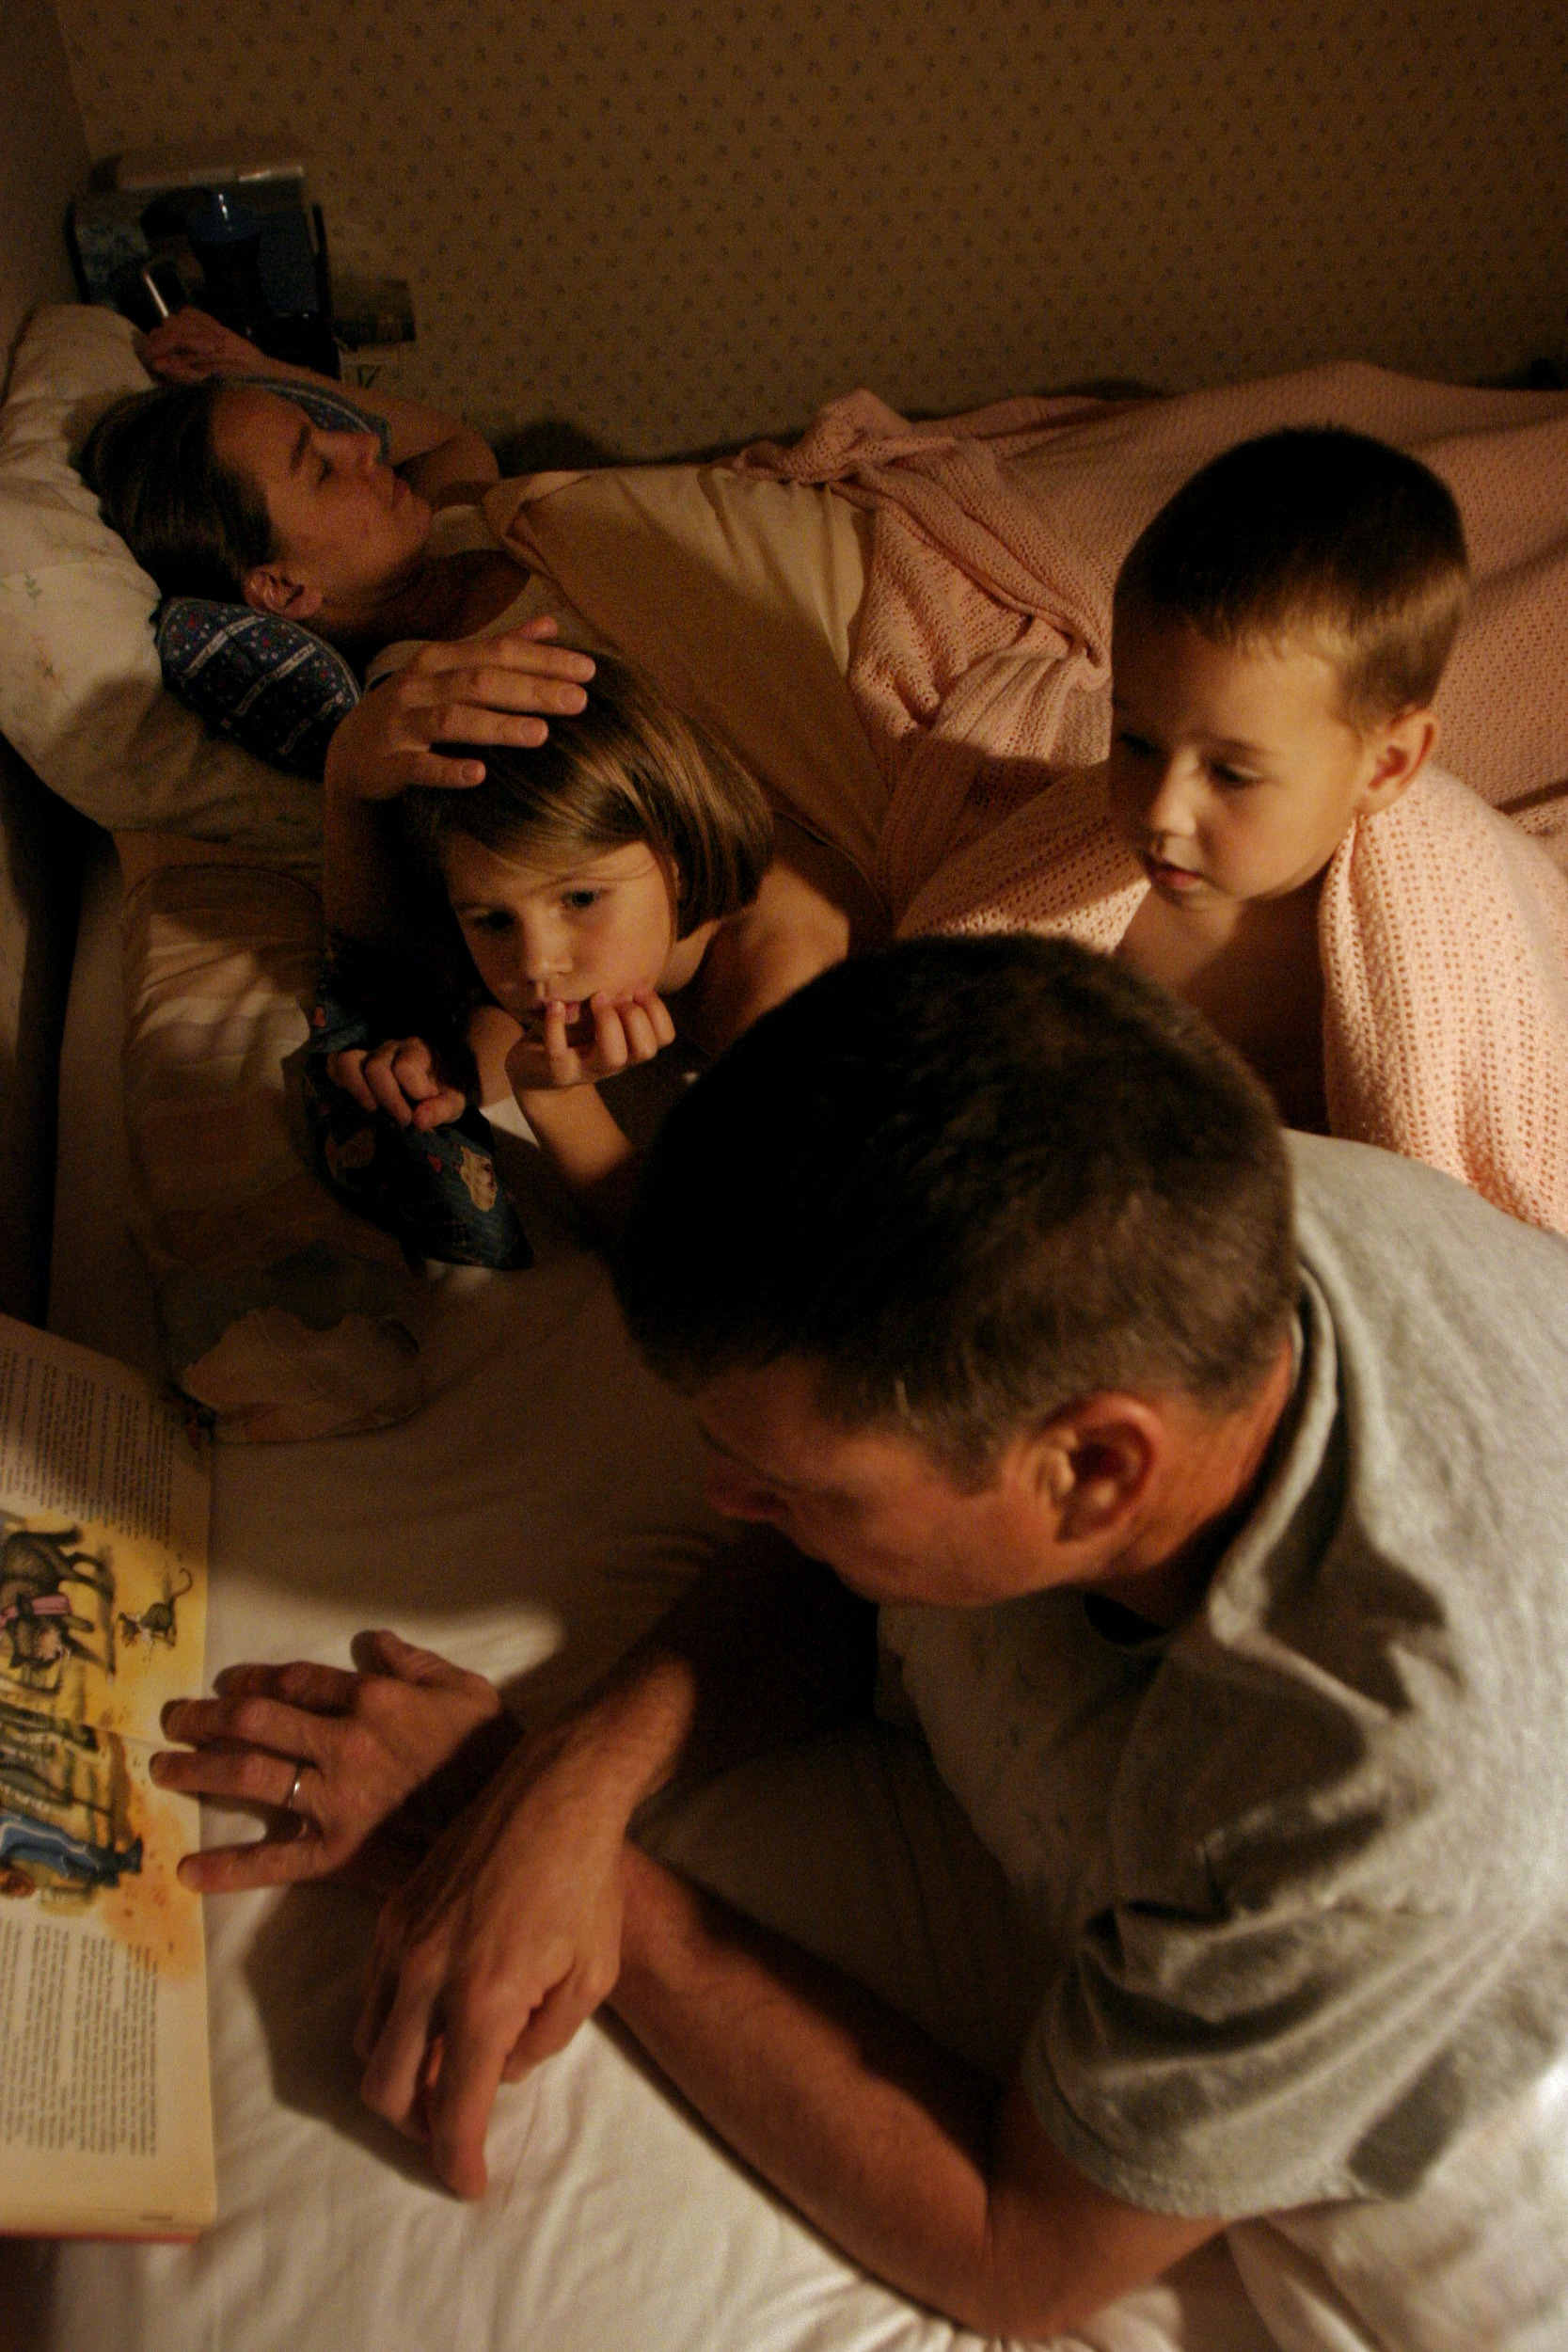 Pat Burdette reads to the children at bedtime as they fall asleep together.